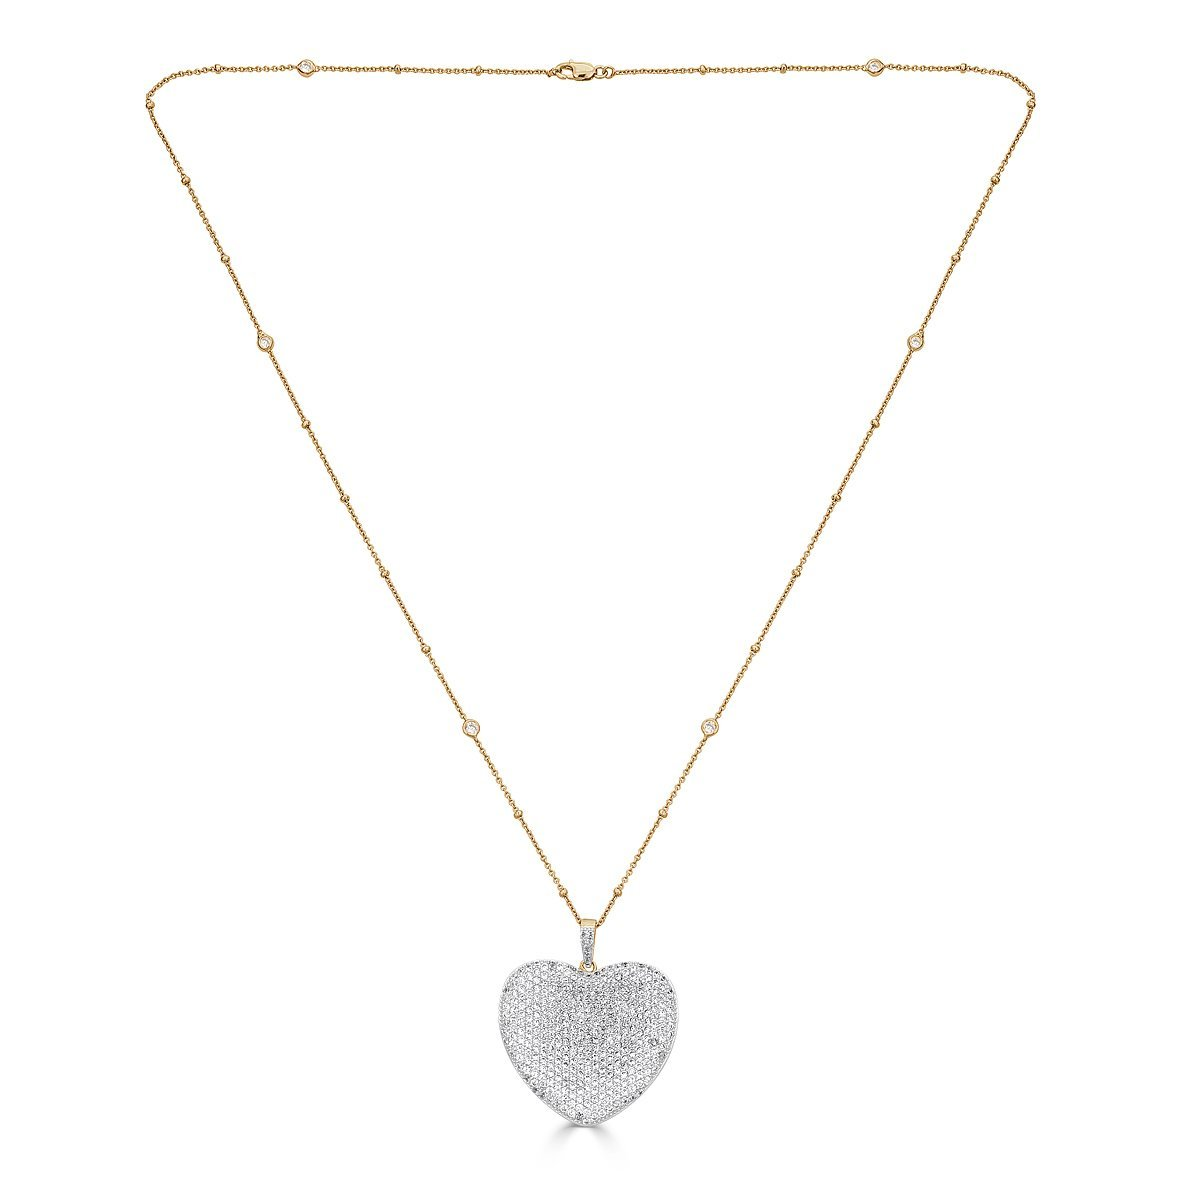 Gold Plated Sterling Silver Cubic Zirconia Pave Heart Necklace by Caratina